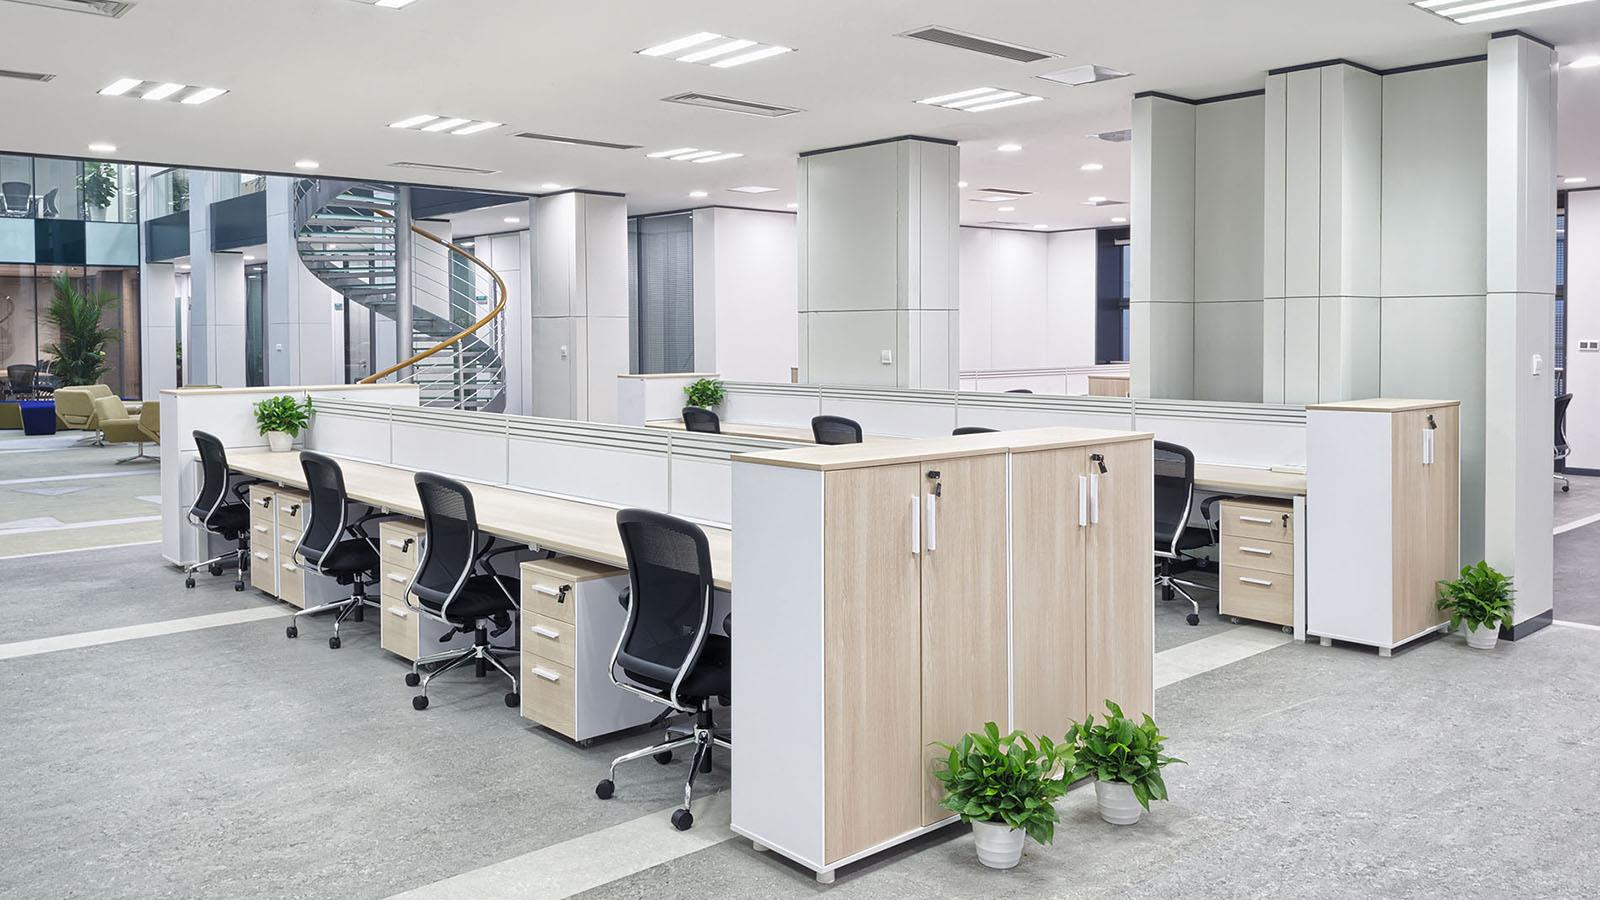 Office Fit-Outs | Office Fit Out Costs Sydney | ImpeccaBuild |Sydney (14)